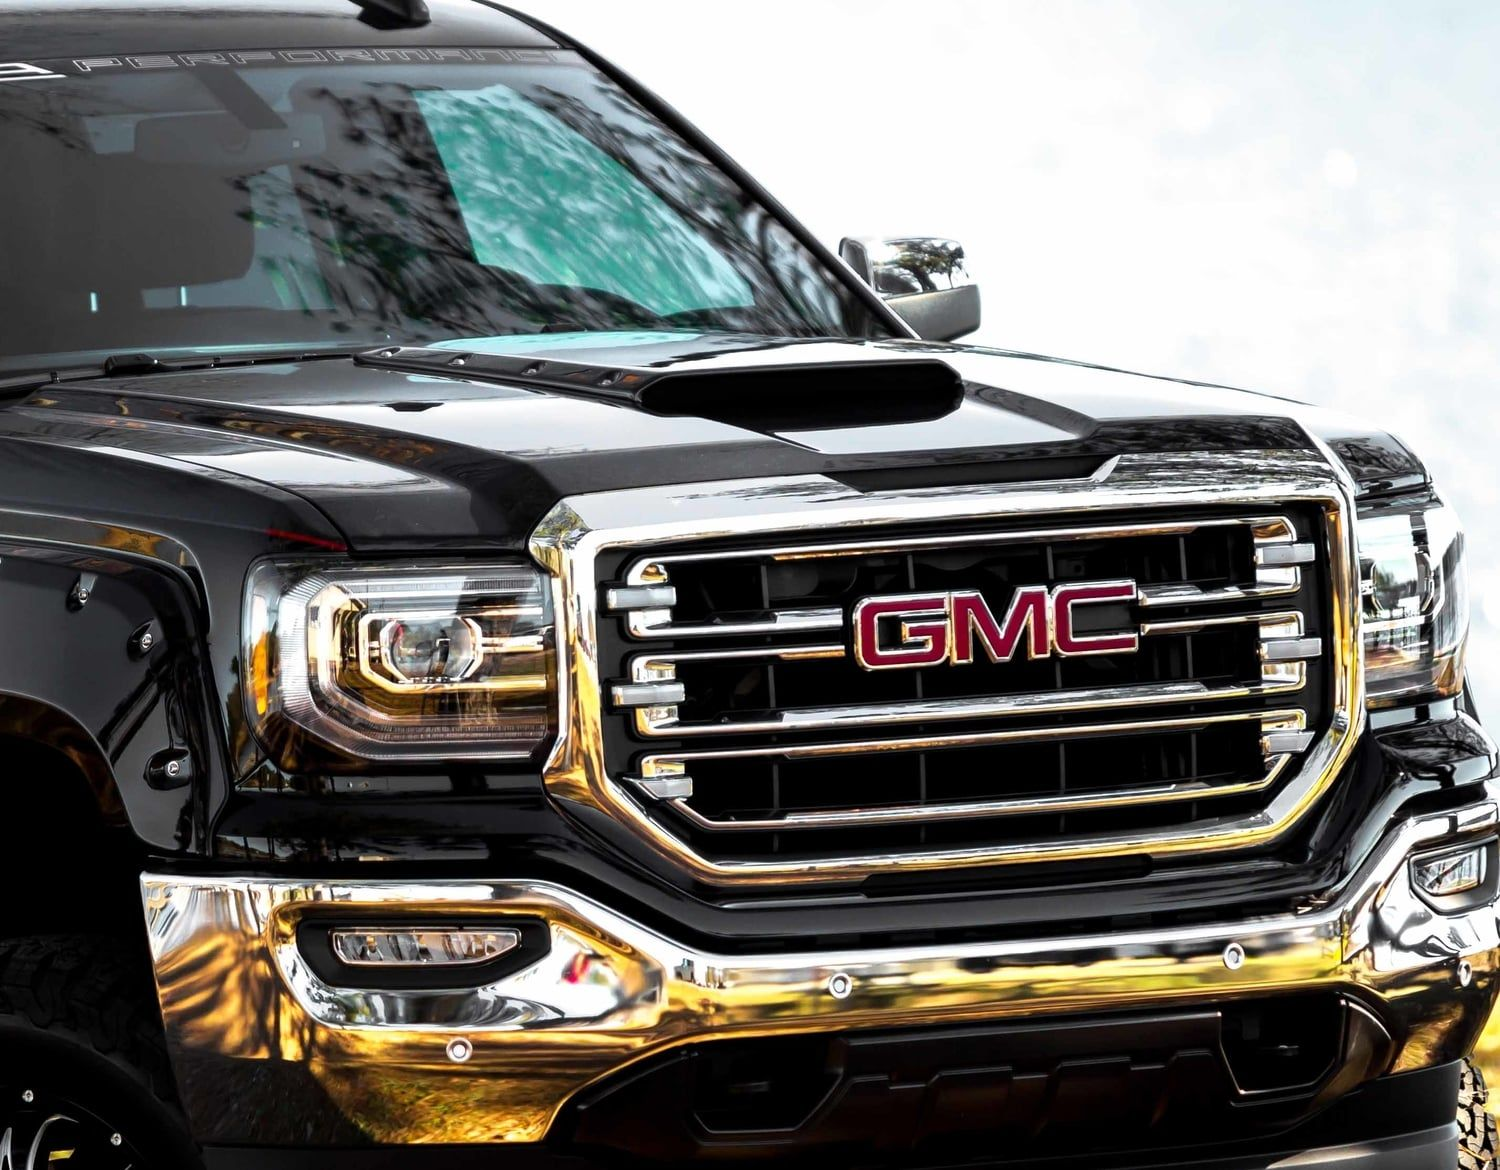 Take an in depth look at the flagship sca exclusive gmc sierra and 3500 black widow lifted trucks